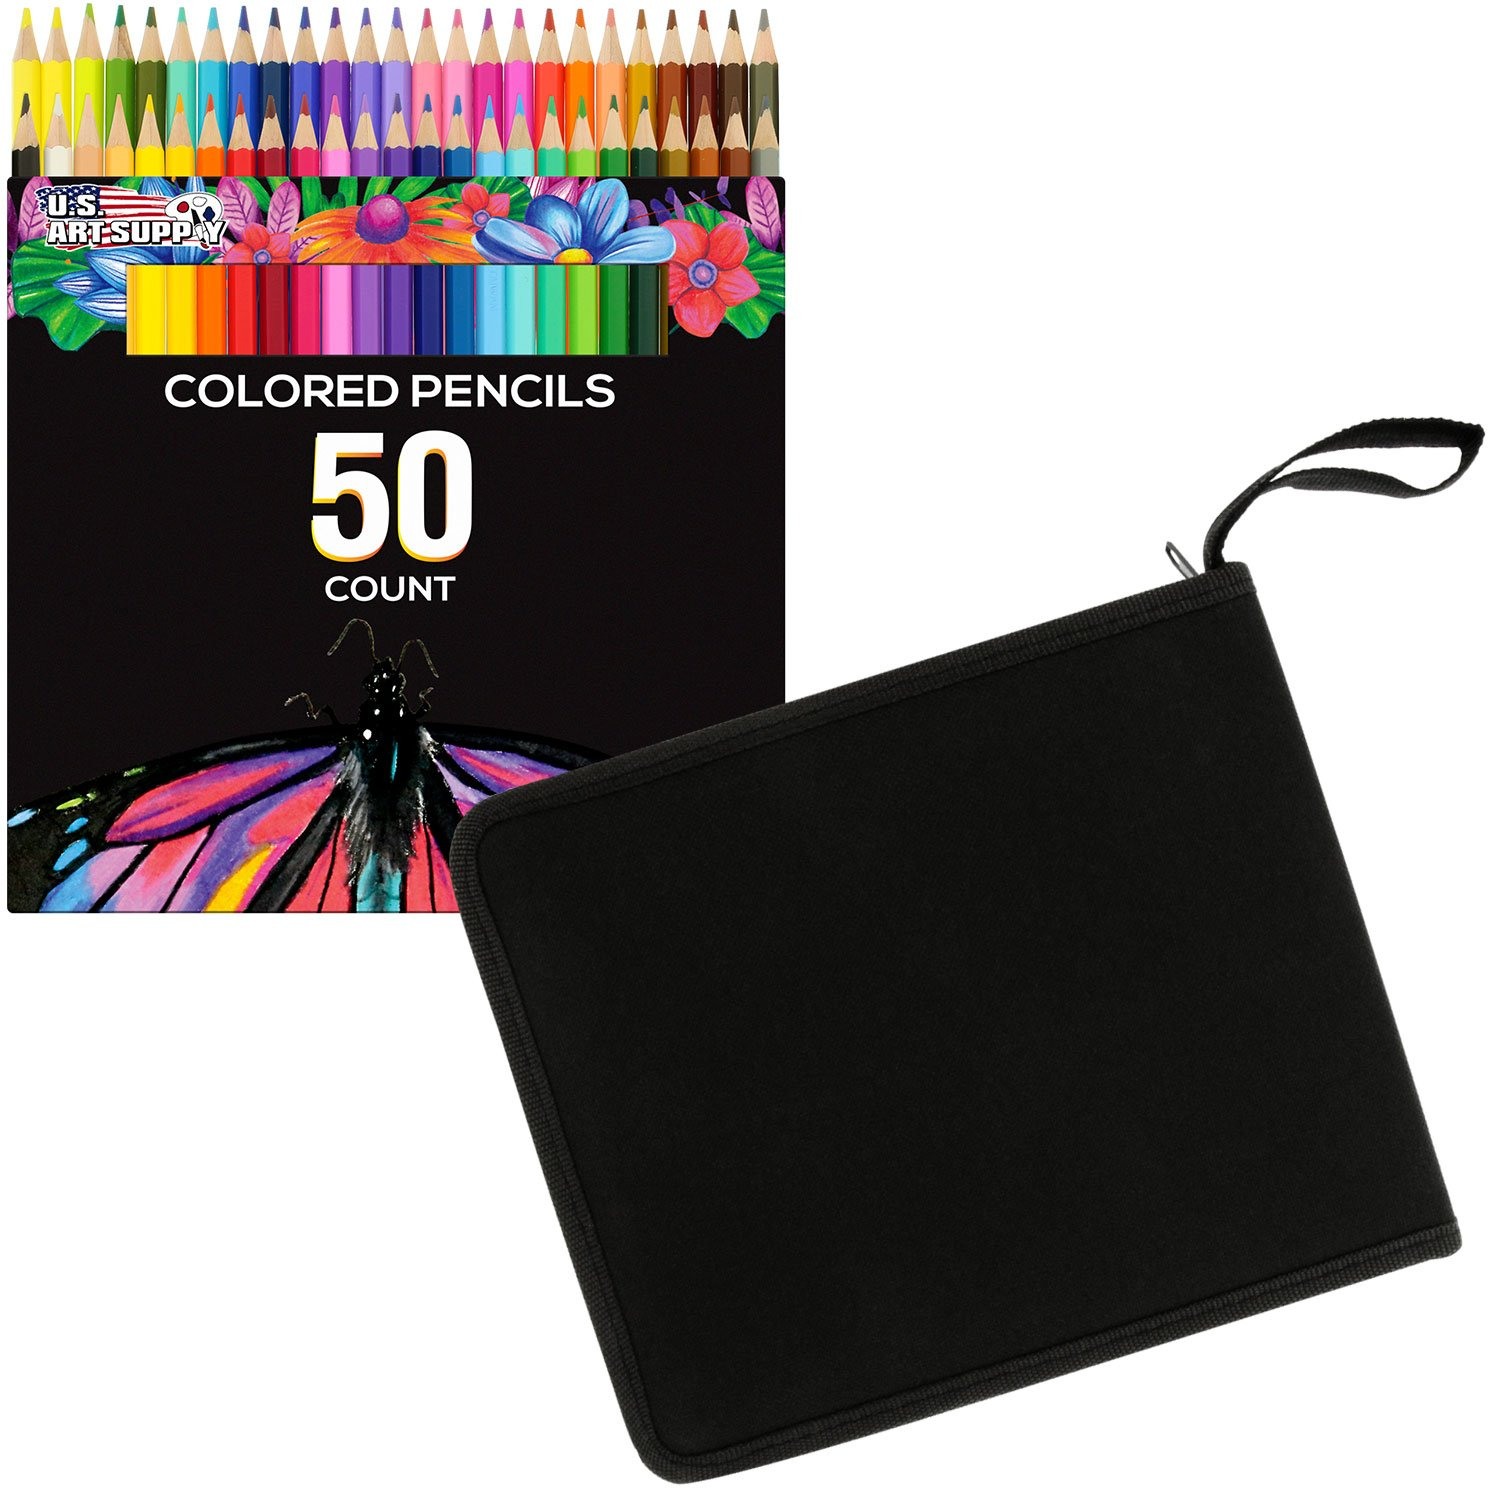 US Art Supply 50 Piece Adult Coloring Book Artist Grade Colored Pencil Set and Bonus Zippered Carry Case 4336949421